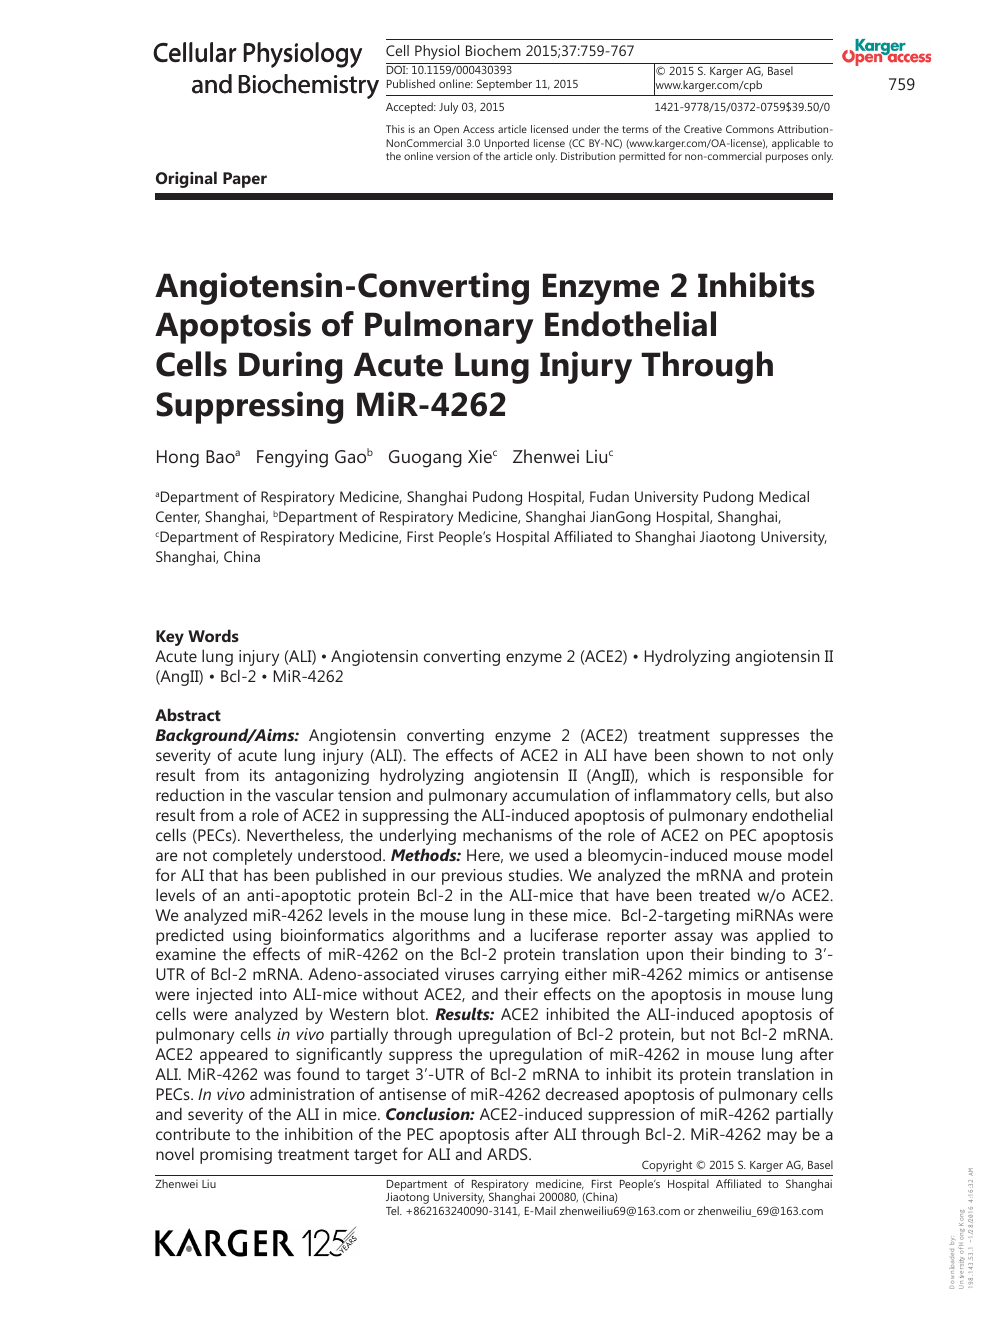 Angiotensin-Converting Enzyme 2 Inhibits Apoptosis of